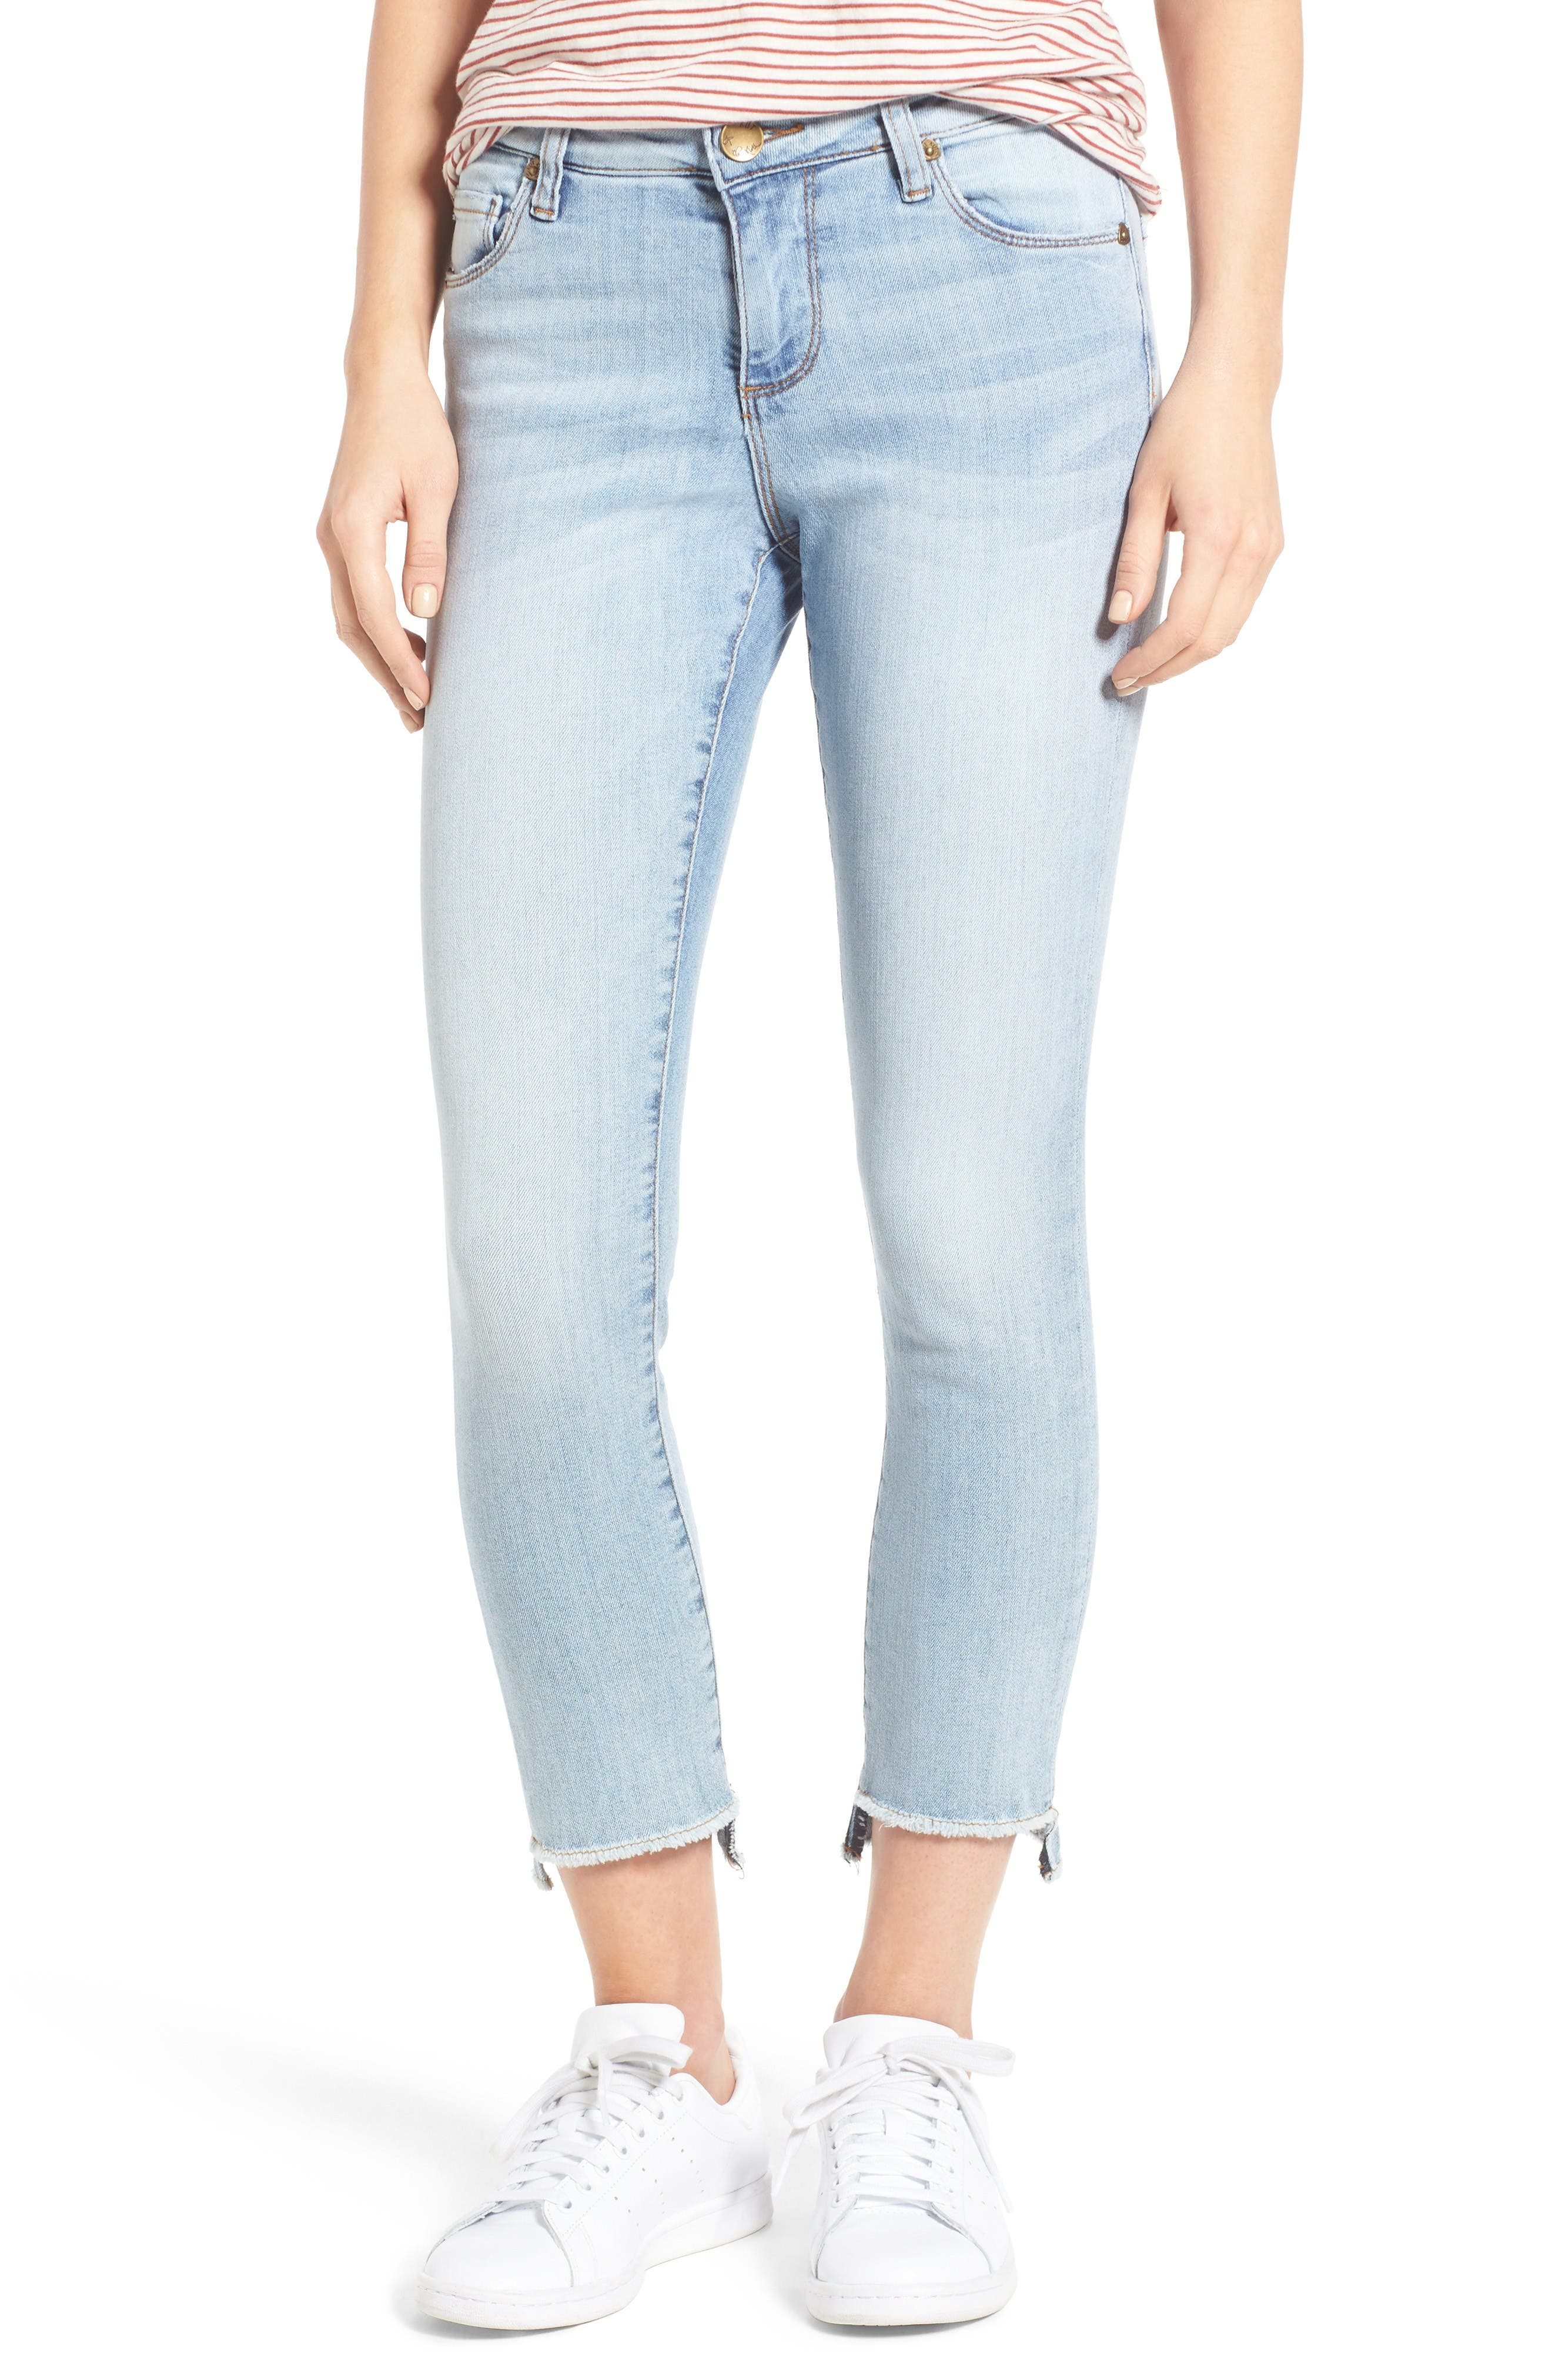 Kut from the Kloth Reese Uneven Hem Straight Ankle Jeans (Celebratory)